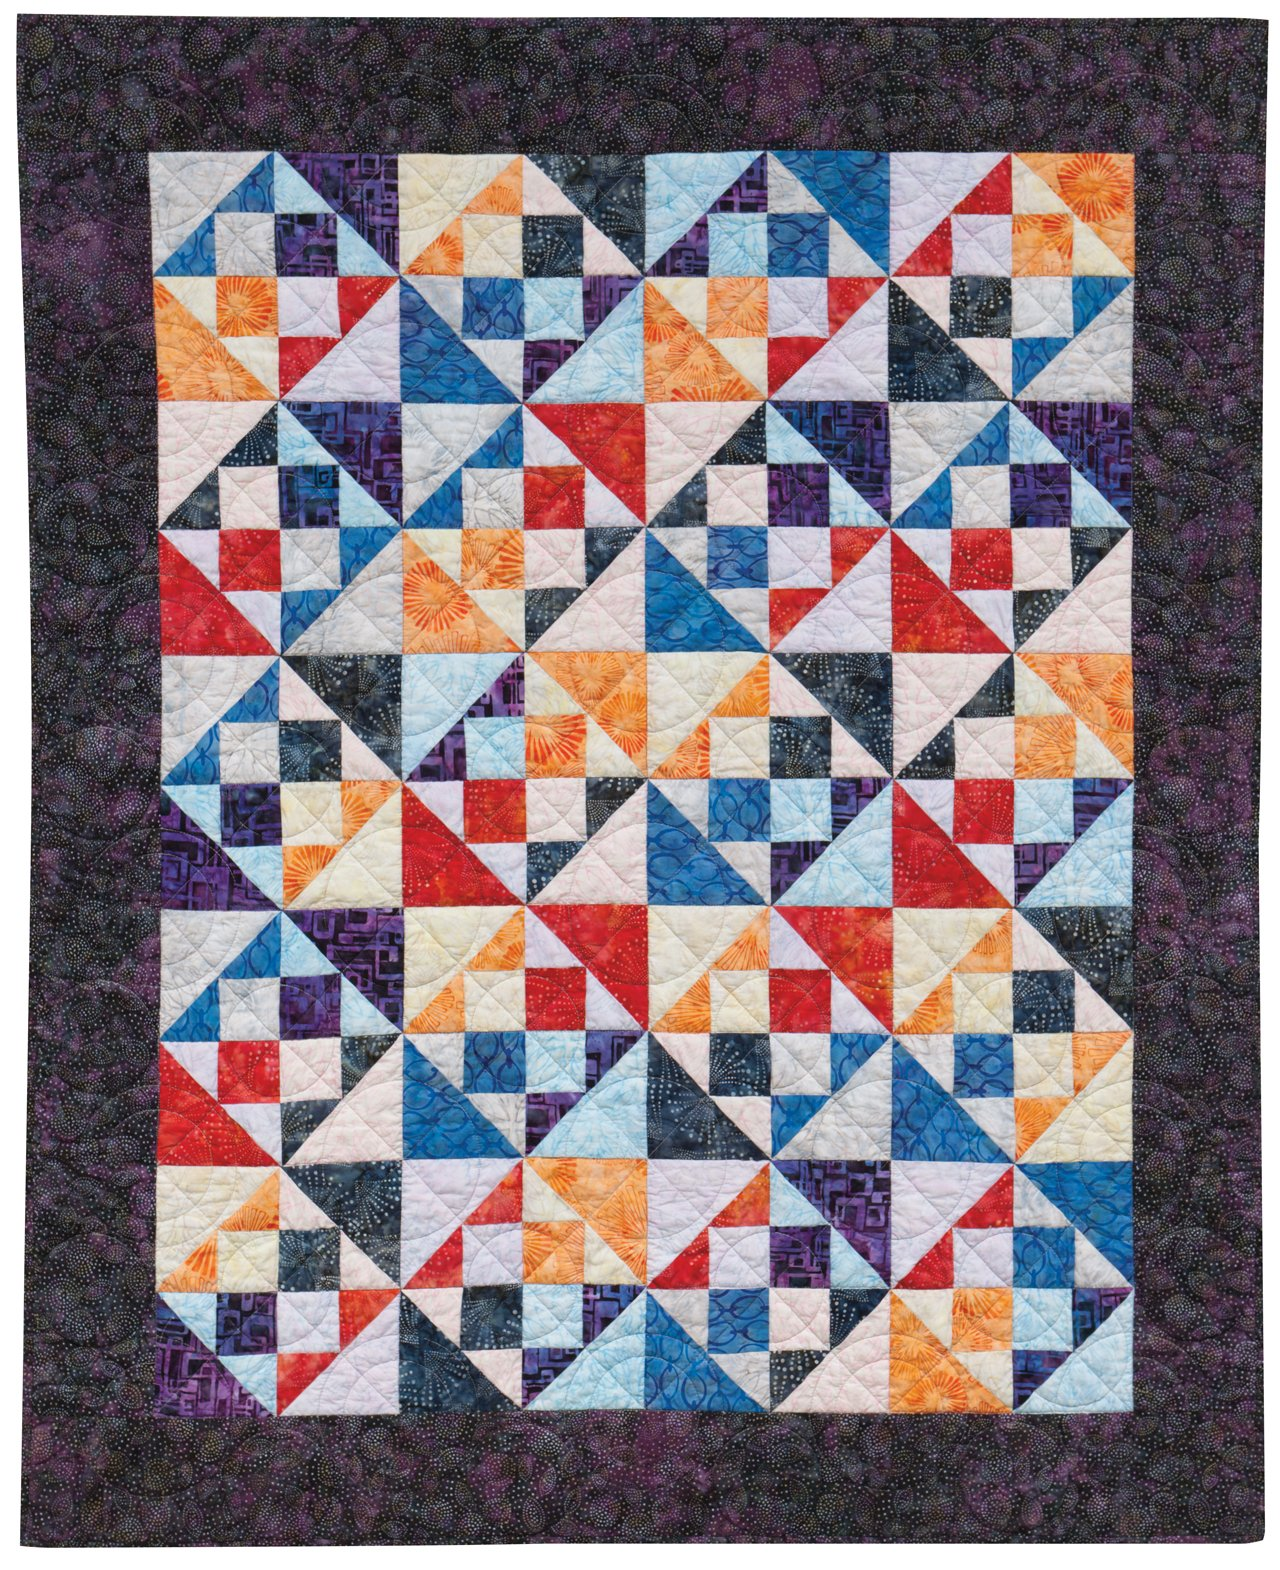 Quilting with Fat Quarters: 17 New Patterns from the Staff at That Patchwork  Place®: That Patchwork Place: 0744527111442: Amazon.com: Books